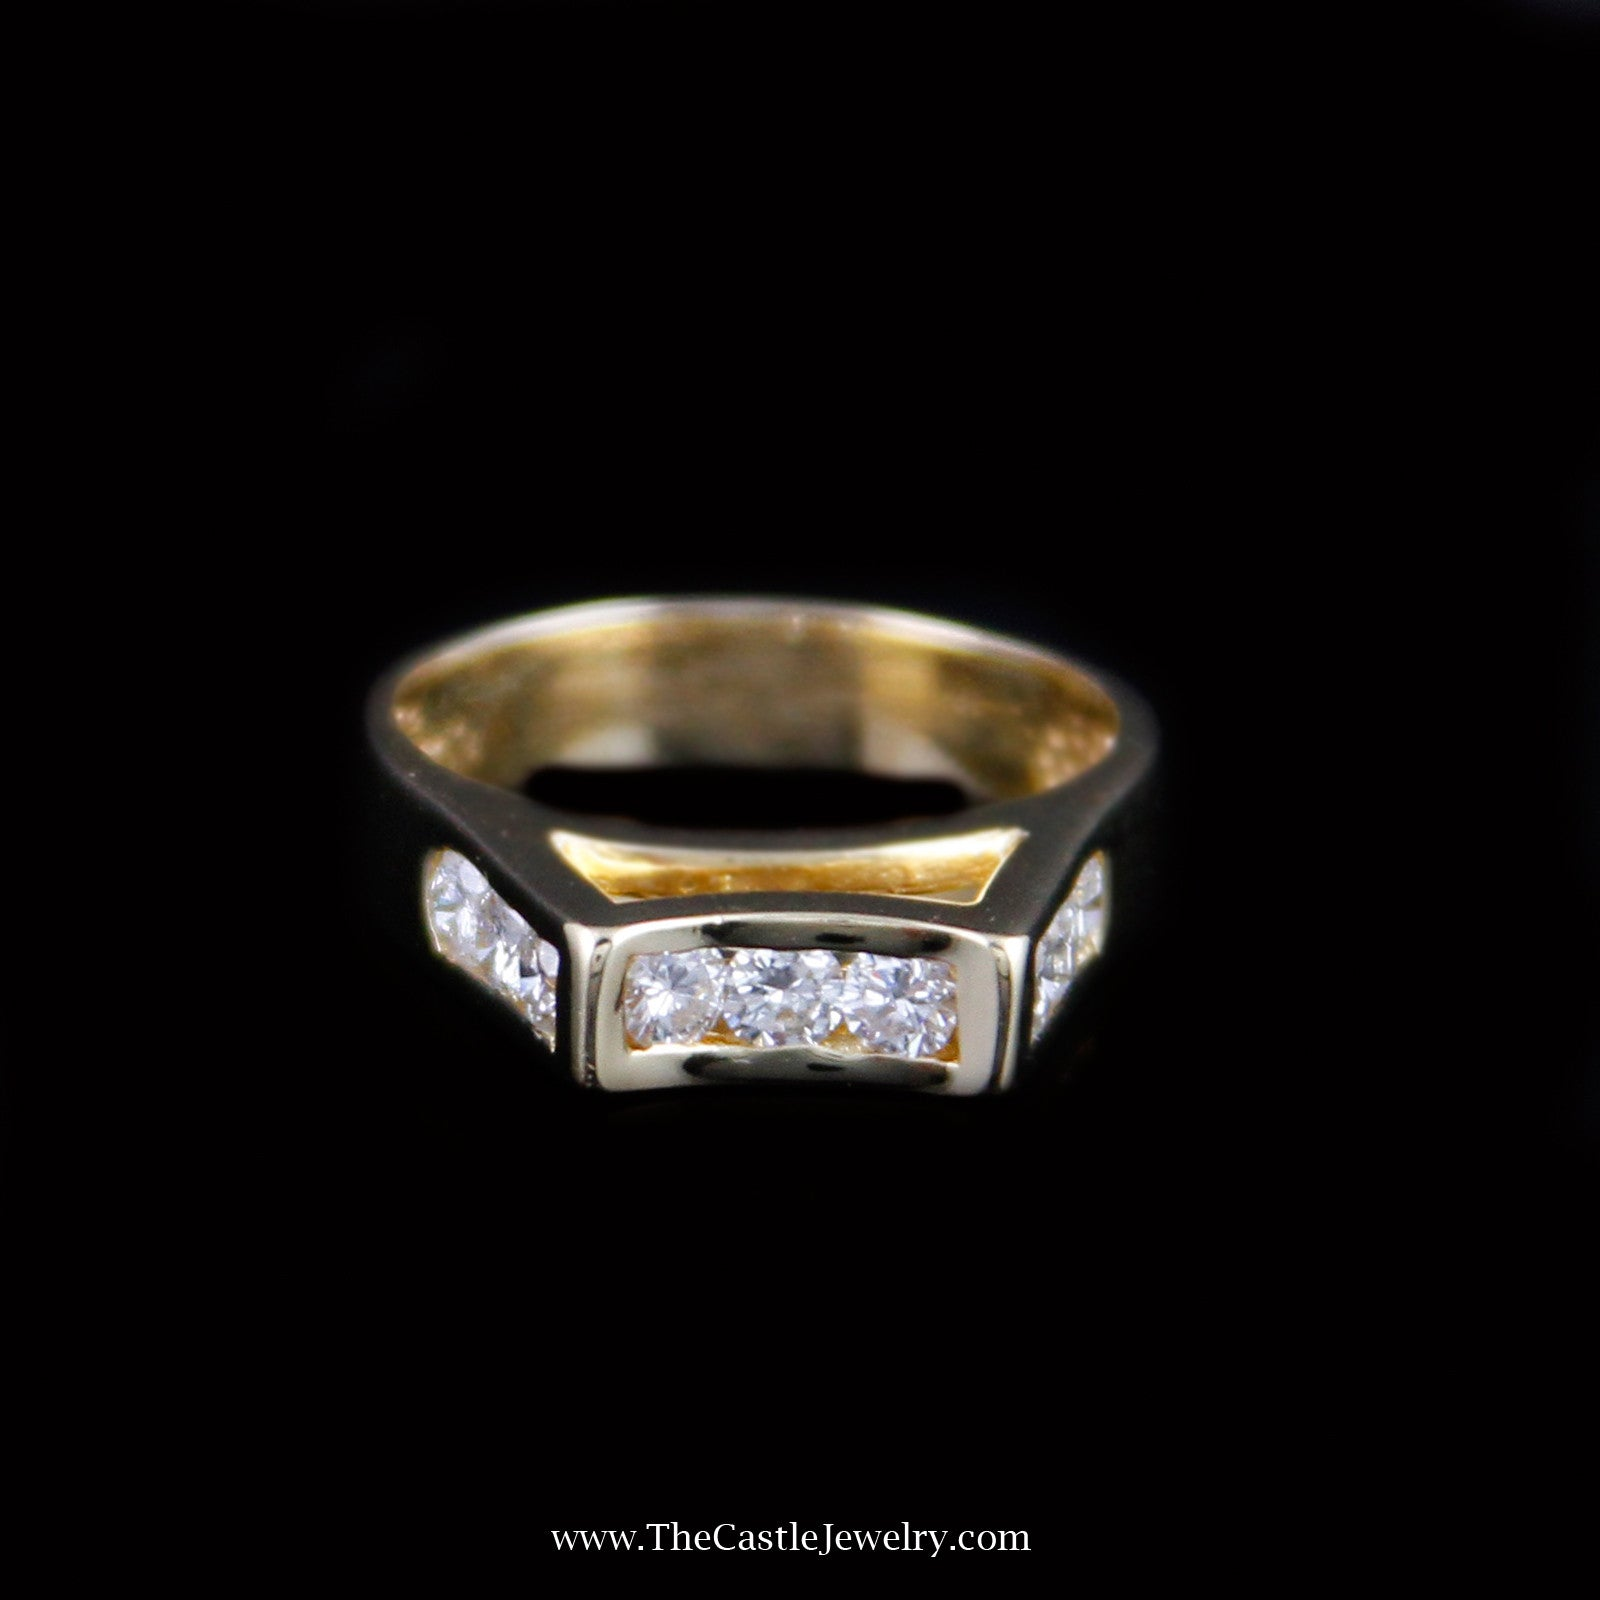 unique tall cathedral design 1cttw diamond ring in 18k yellow gold